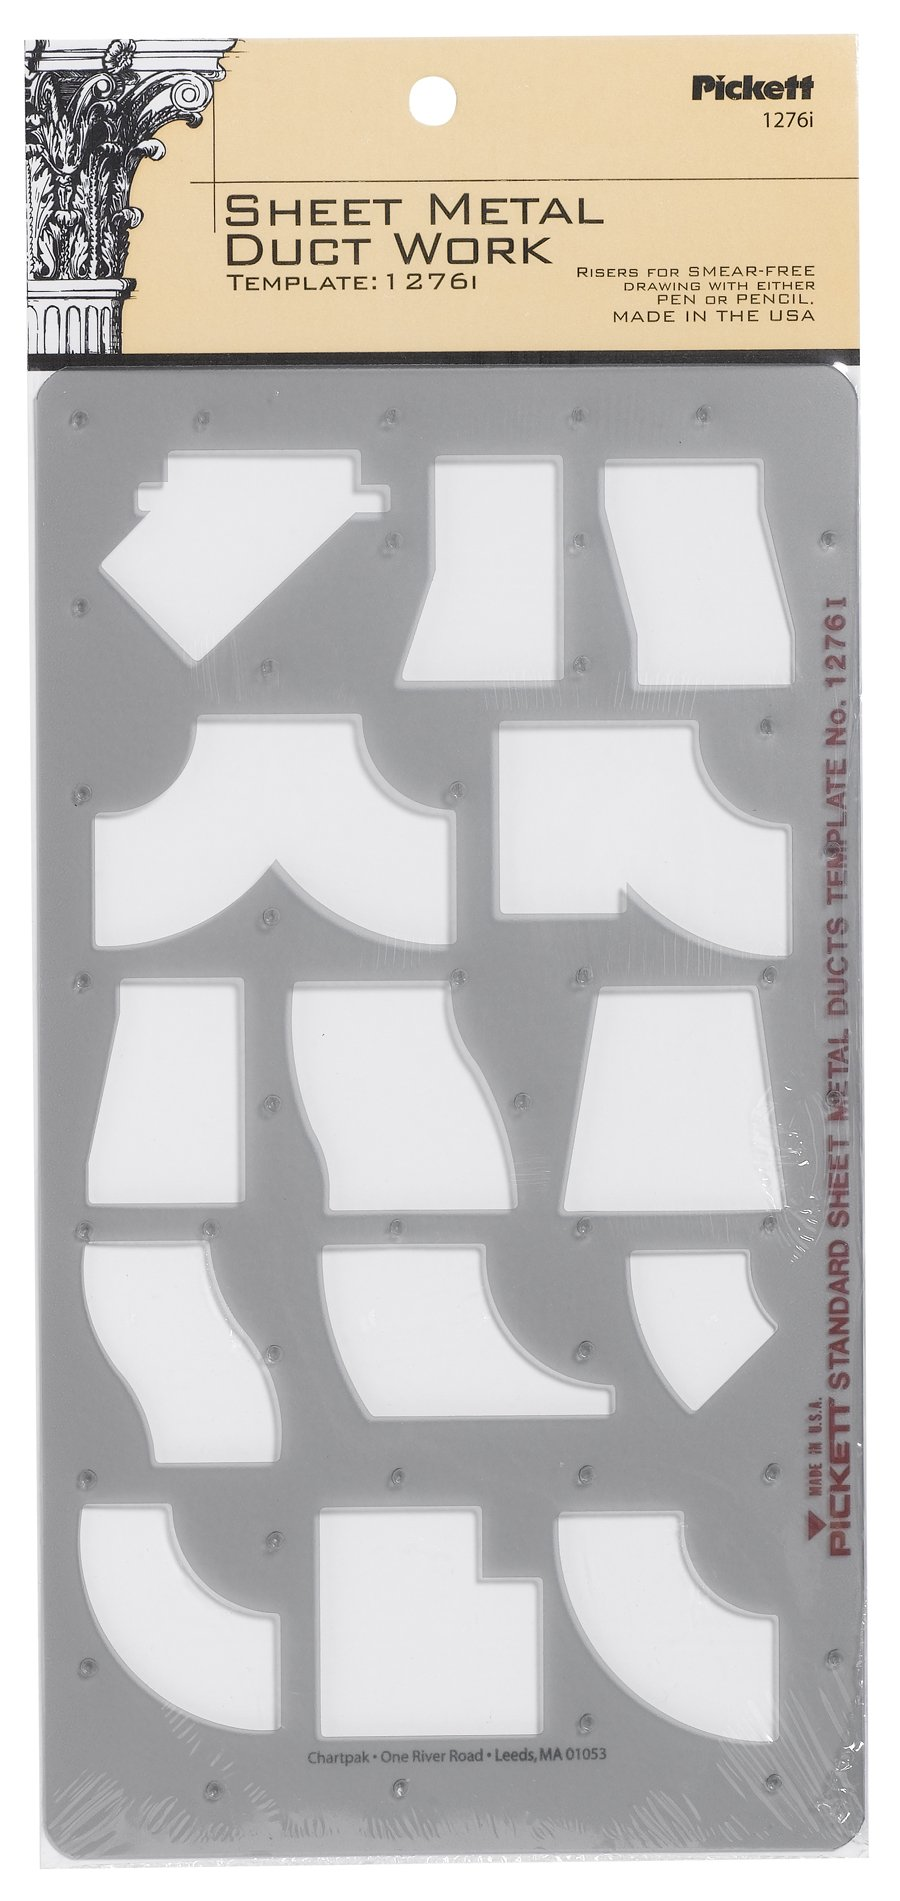 Pickett Sheet Metal Duct Work Template (1276I) by Pickett